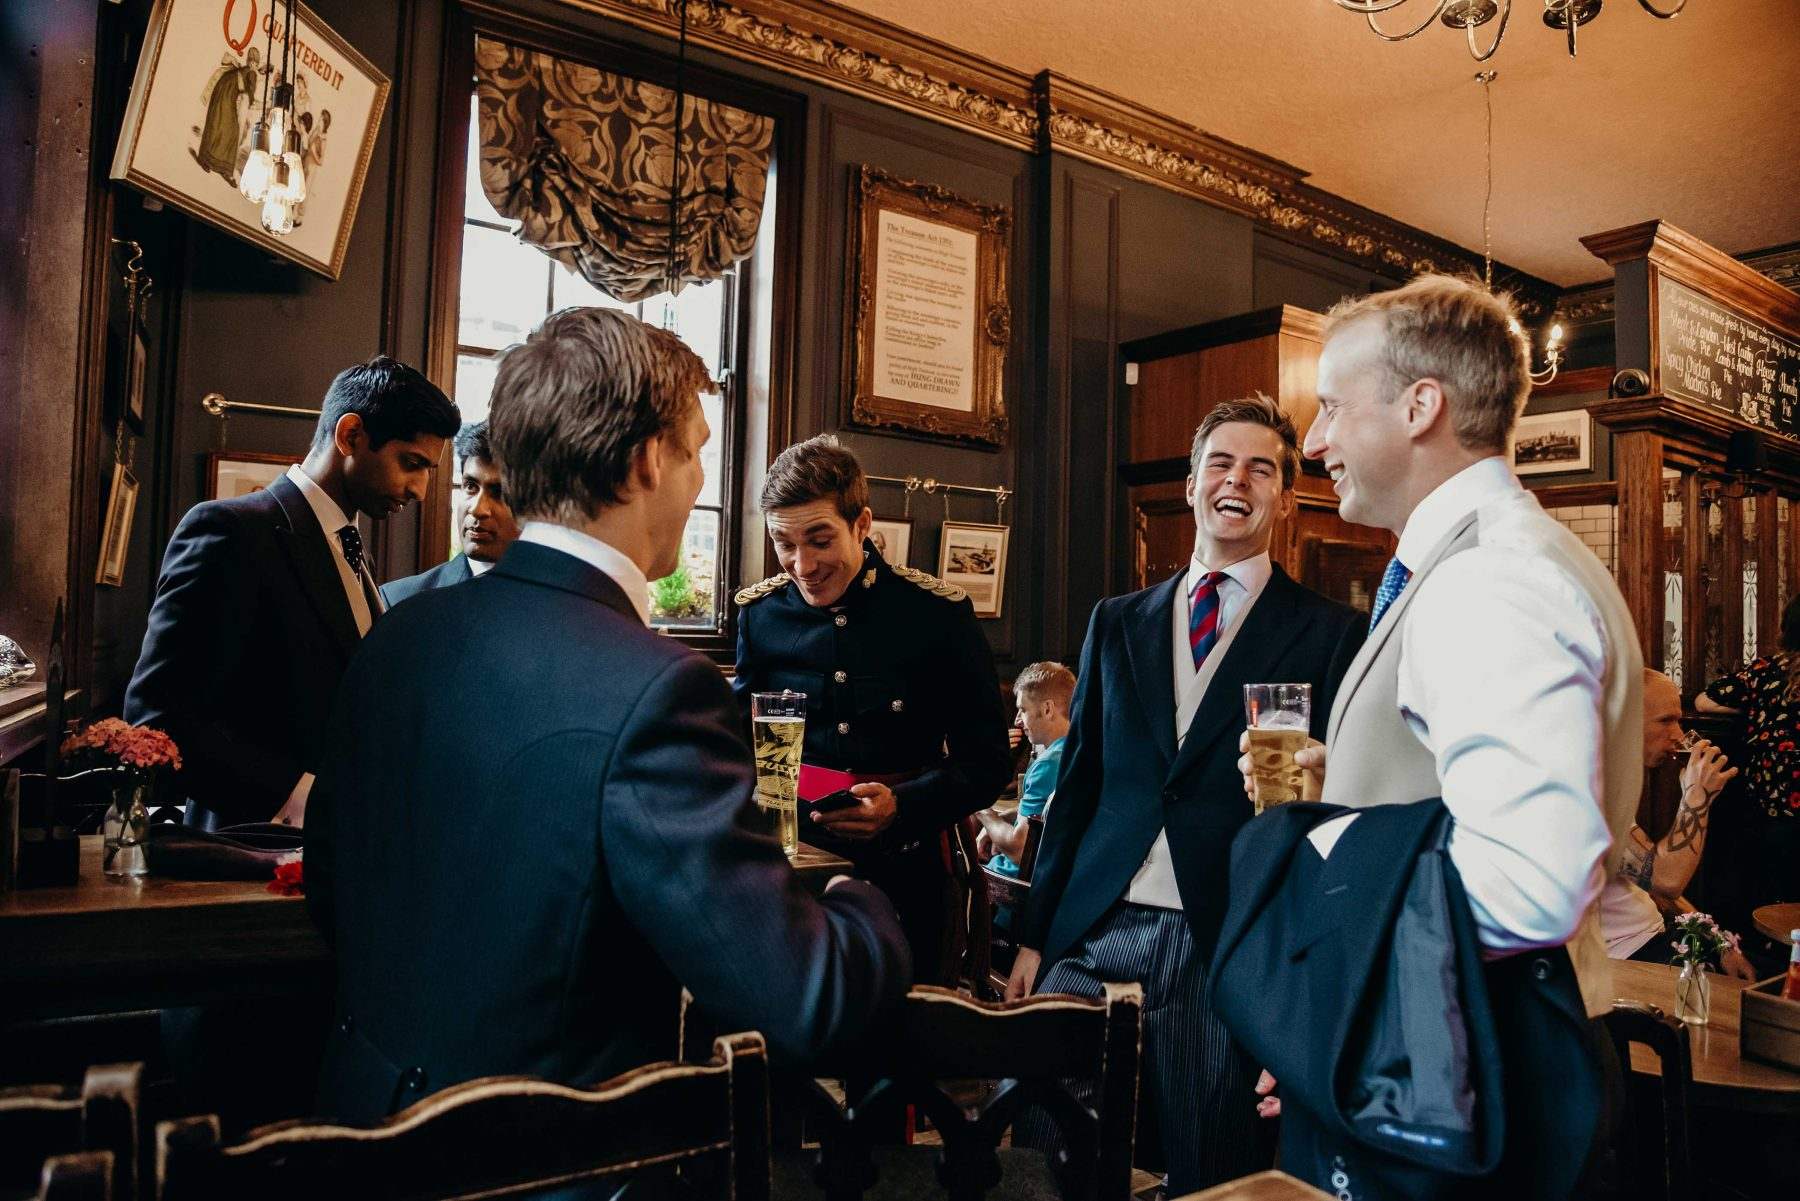 Cheshire Wedding Photography The Tower of London